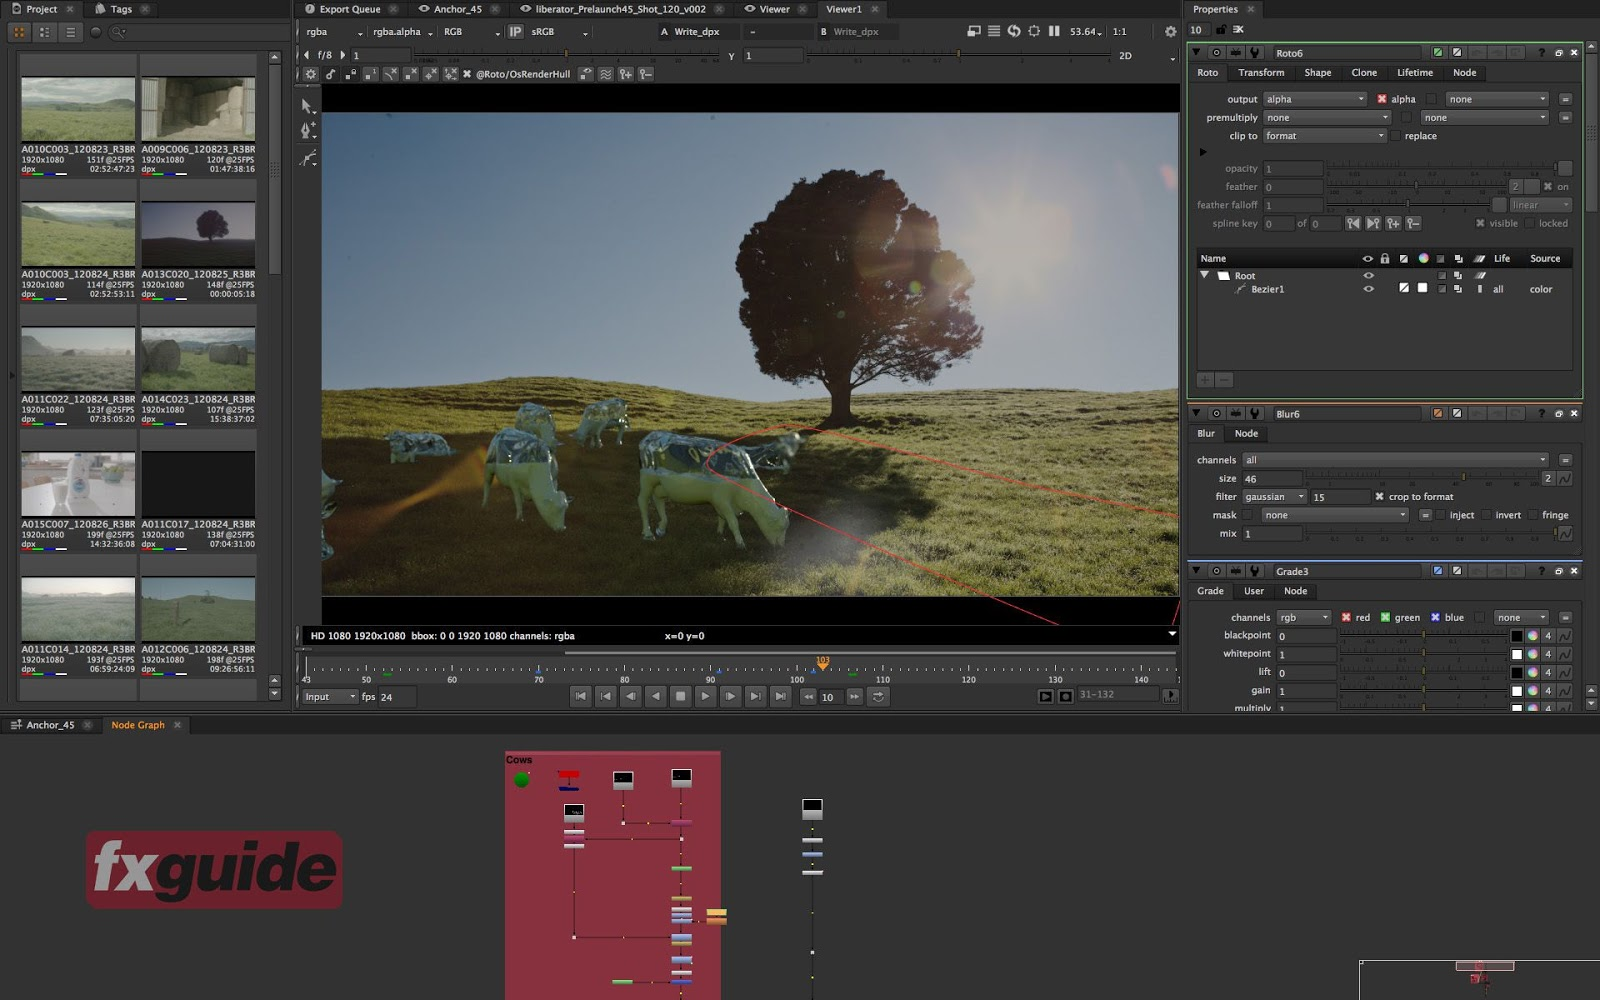 foundry nuke software free download with crack